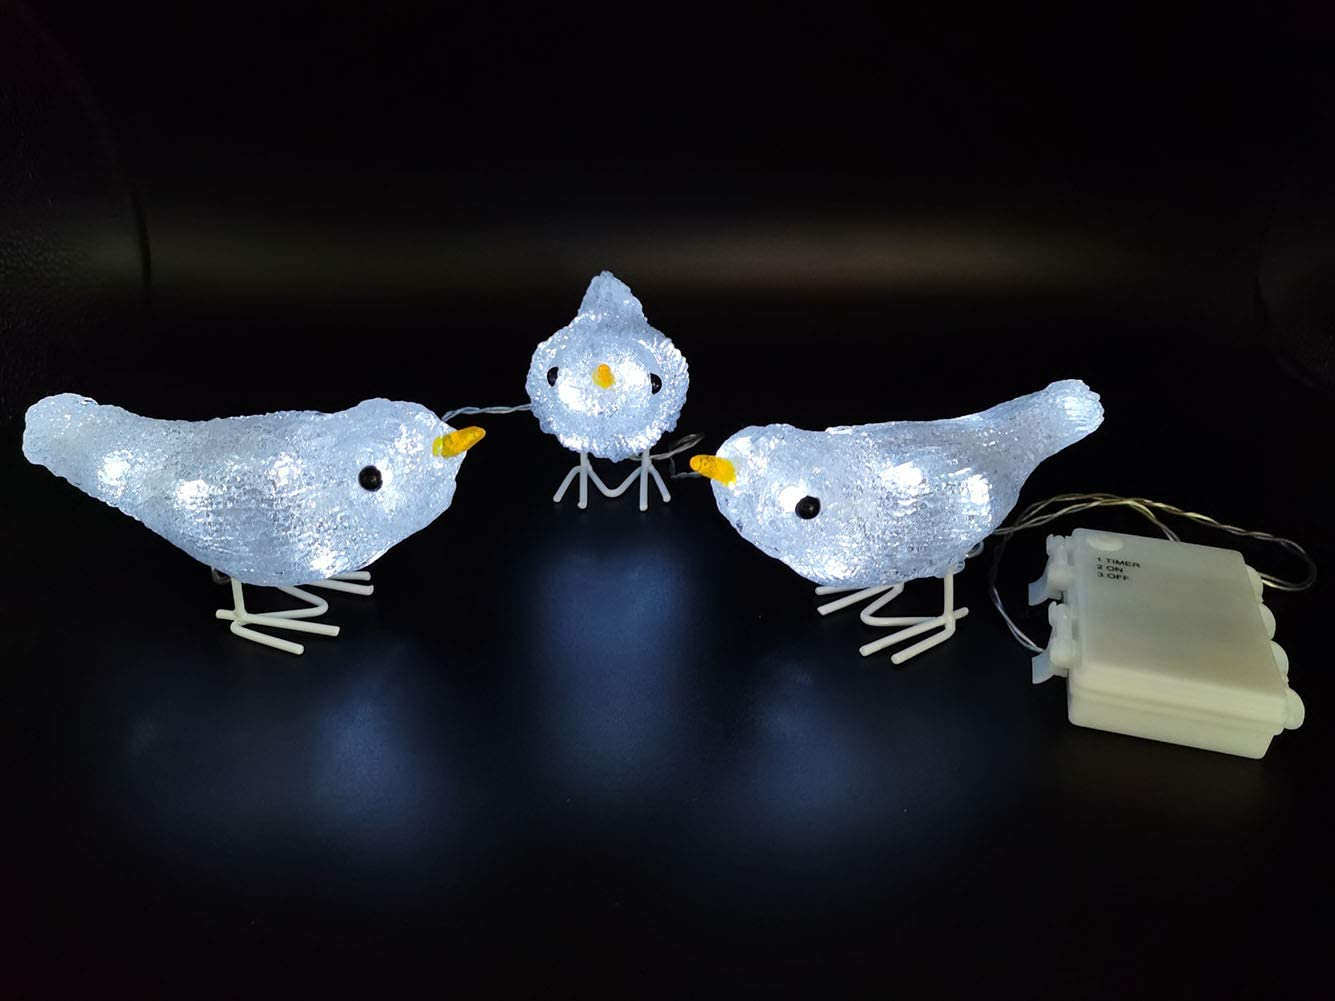 Acrylic Figurines 3 PCS Birds Timer Led Light Indoor Outdoor Decorations for Yard Wedding Garden Party Shop Bar Cute Birthday Gifts Battery Operated G-B001A